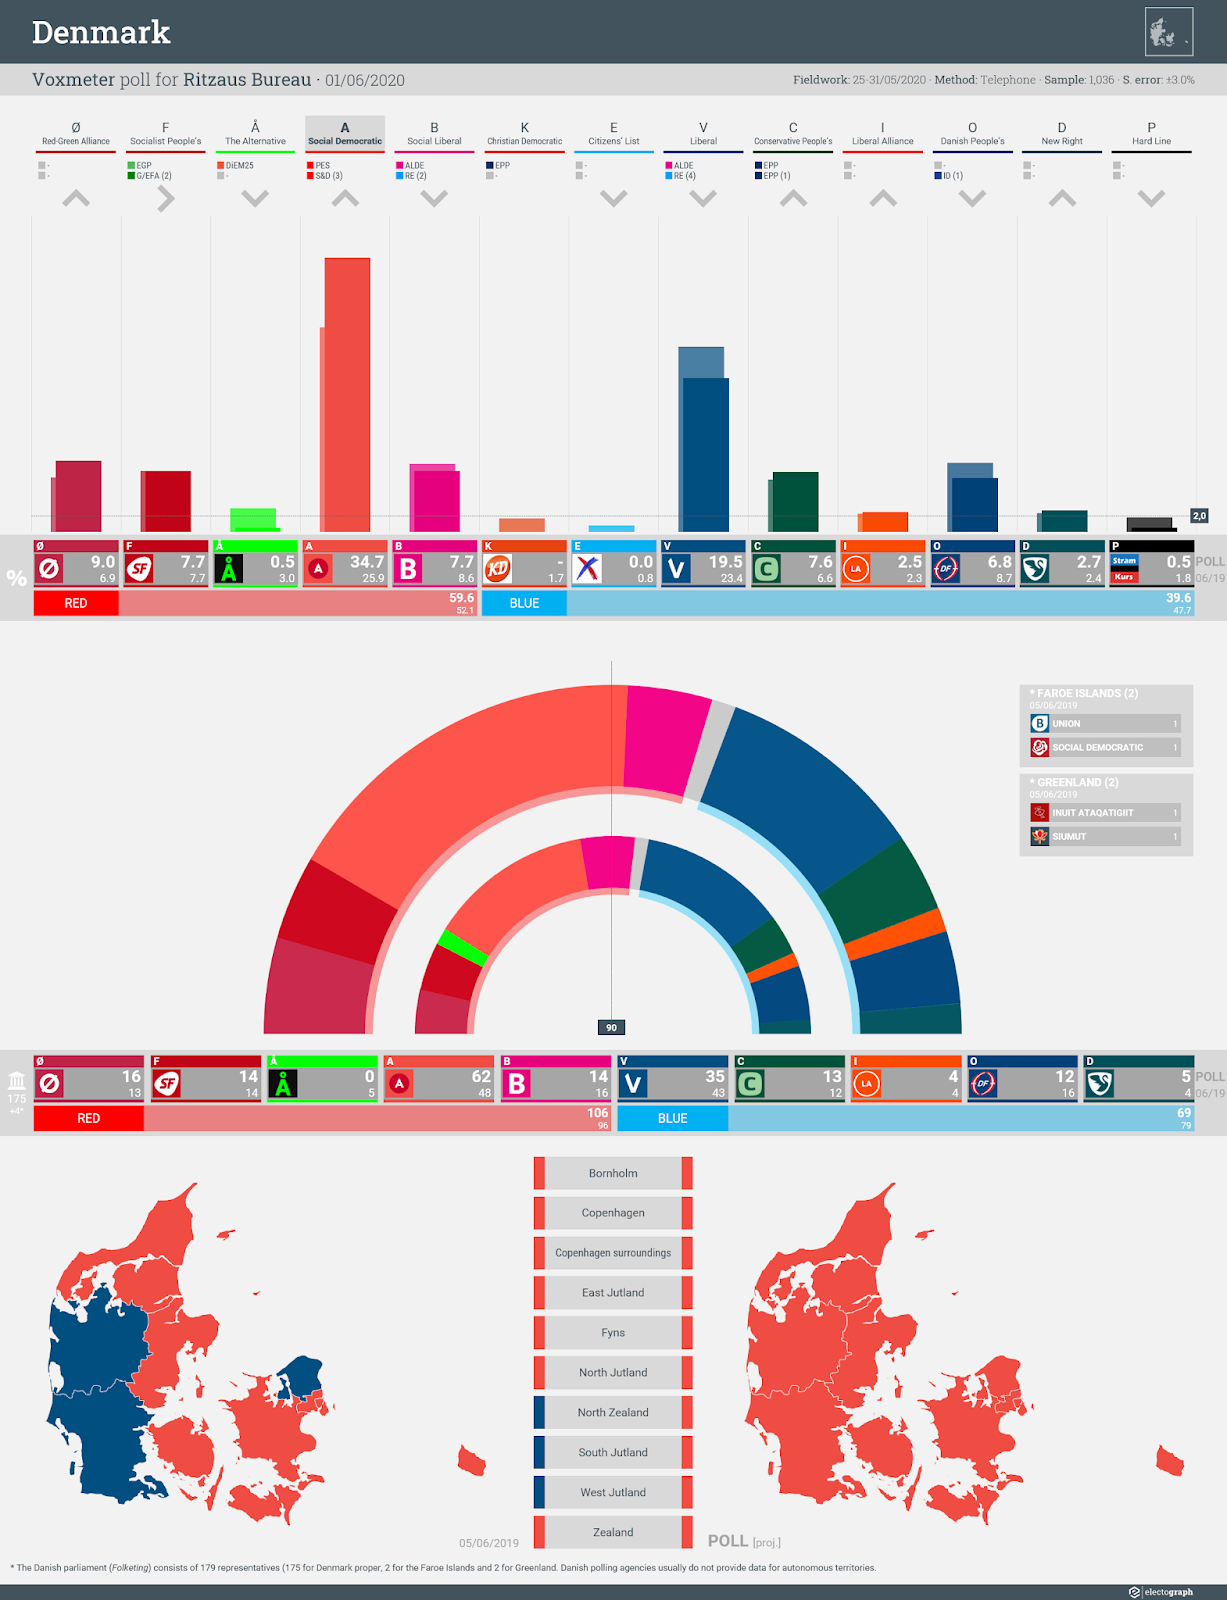 DENMARK: Voxmeter poll chart for Ritzaus Bureau, 1 June 2020